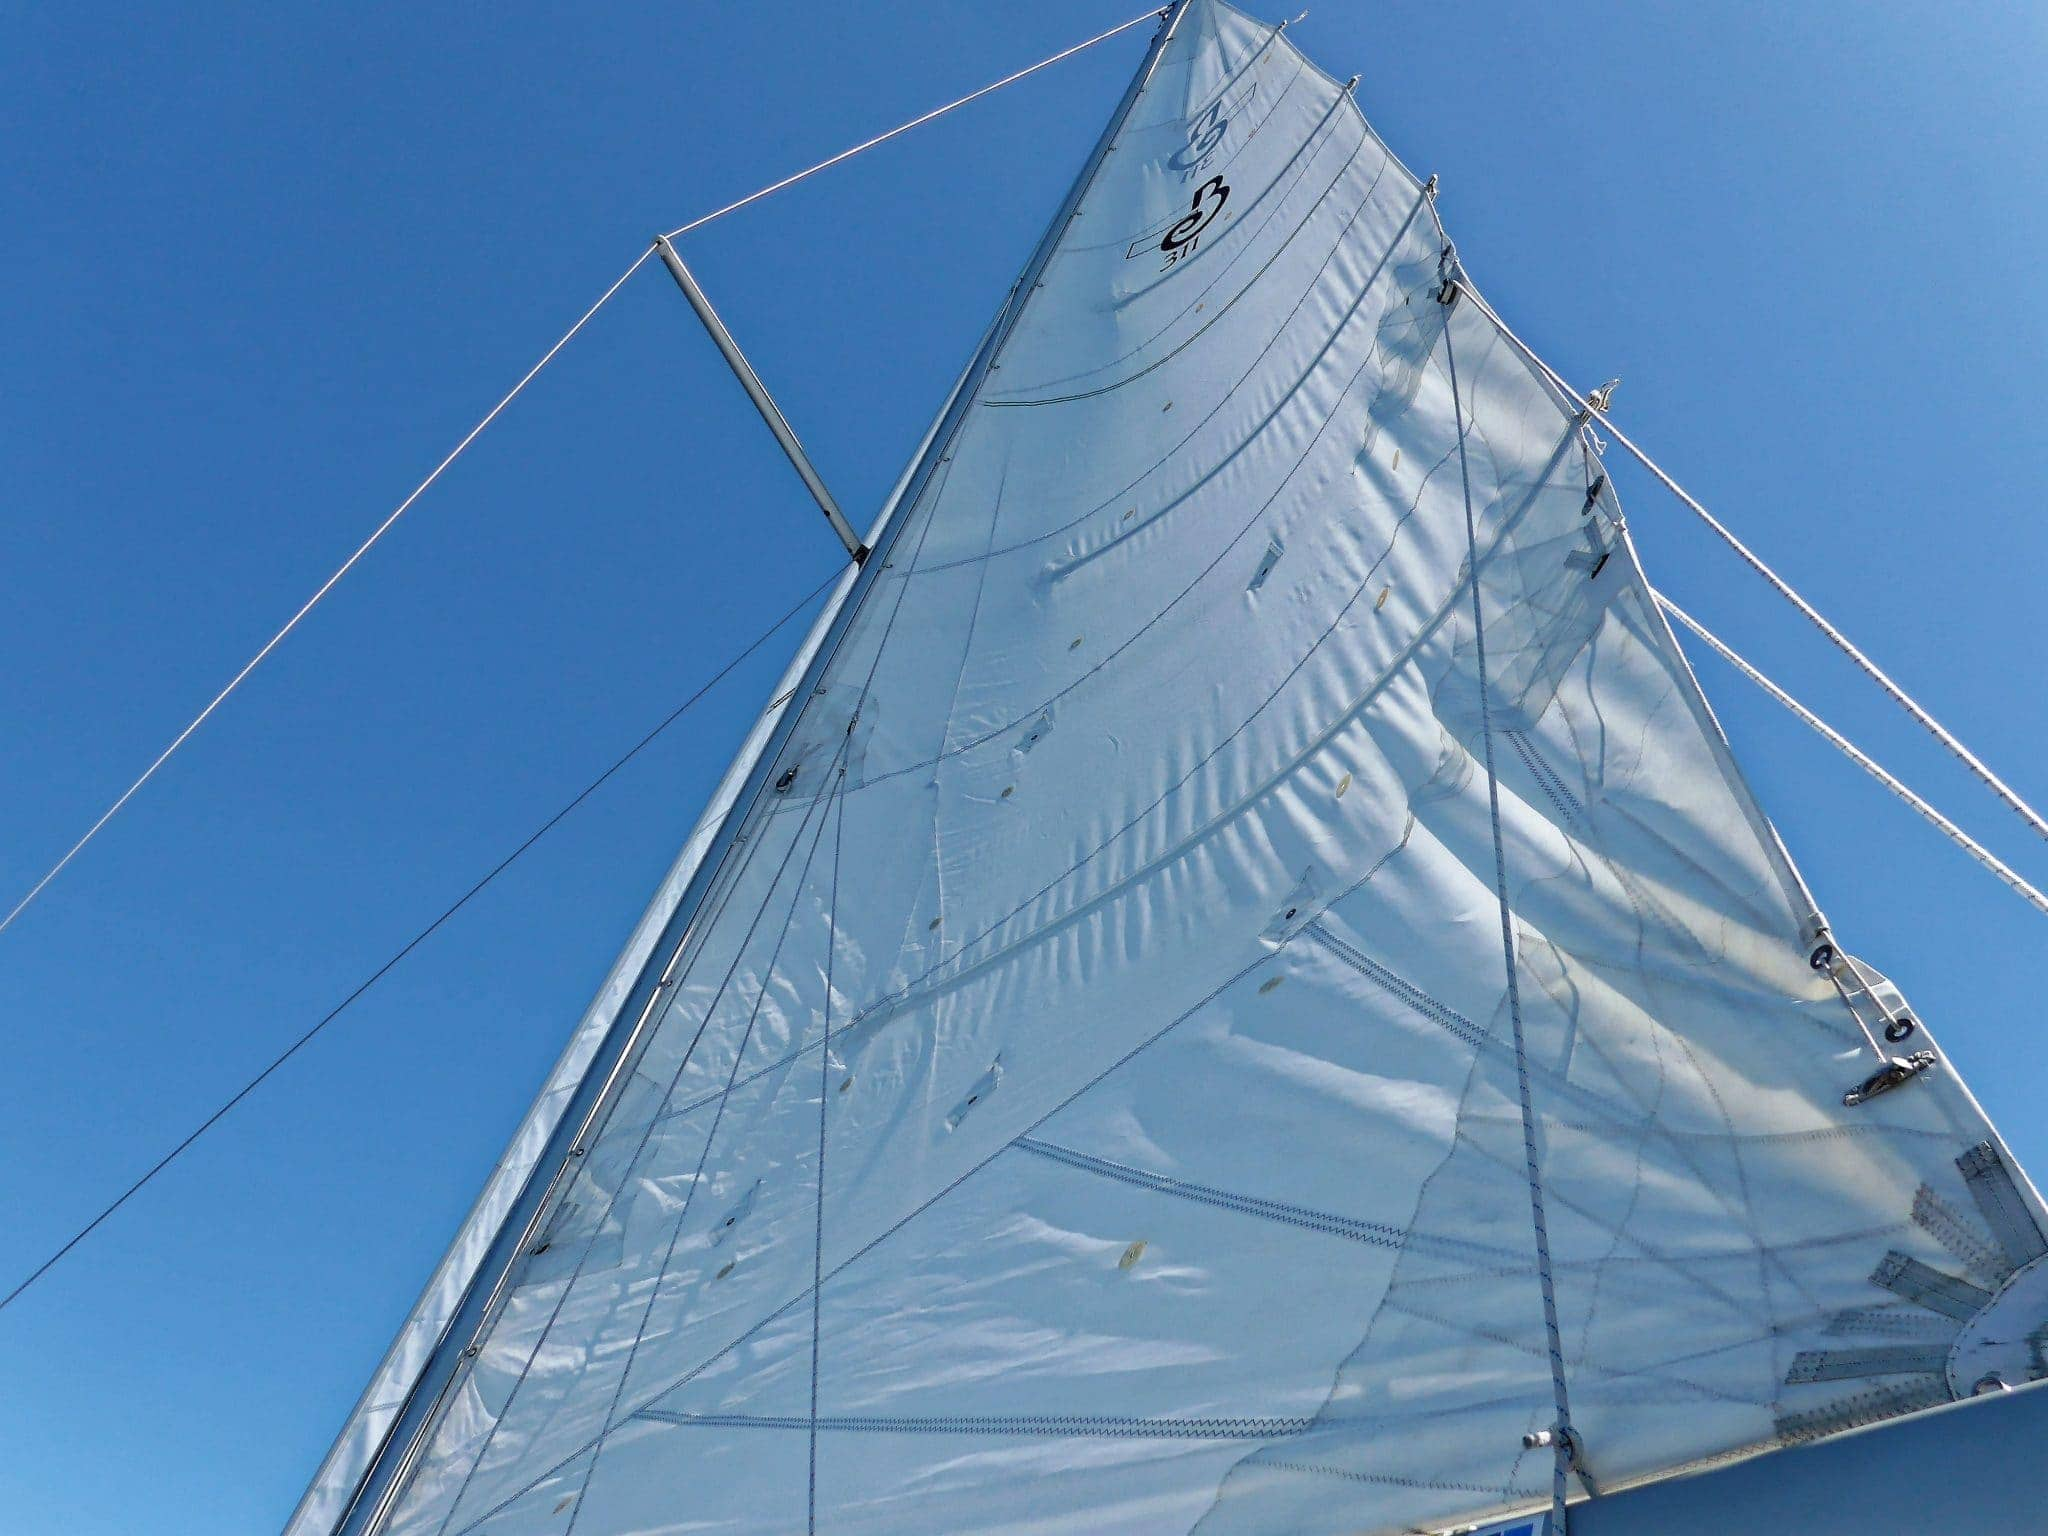 Mainsail with weird leech line issue